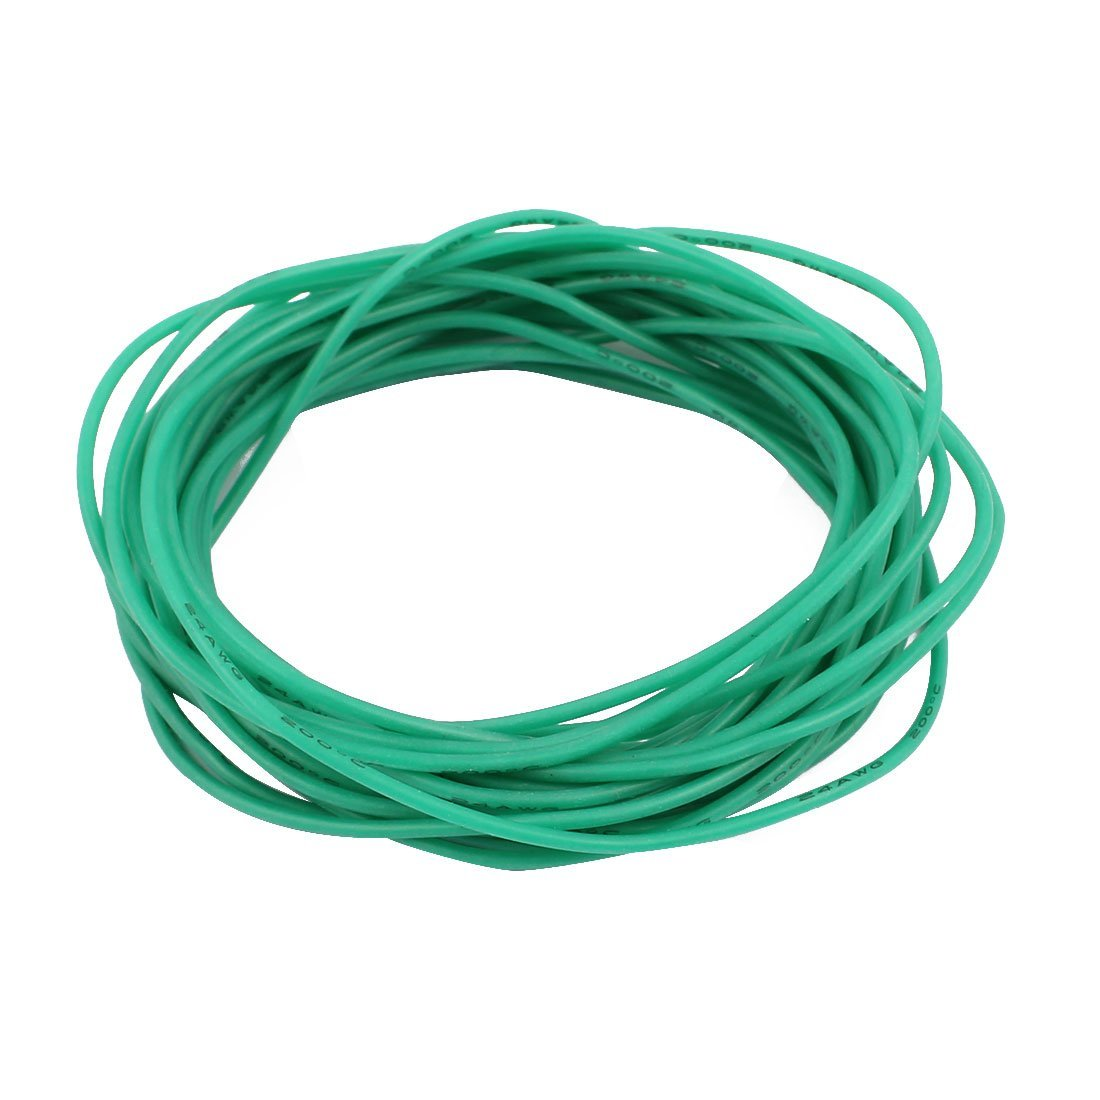 Cheap Silicone Wire 24awg, find Silicone Wire 24awg deals on line at ...